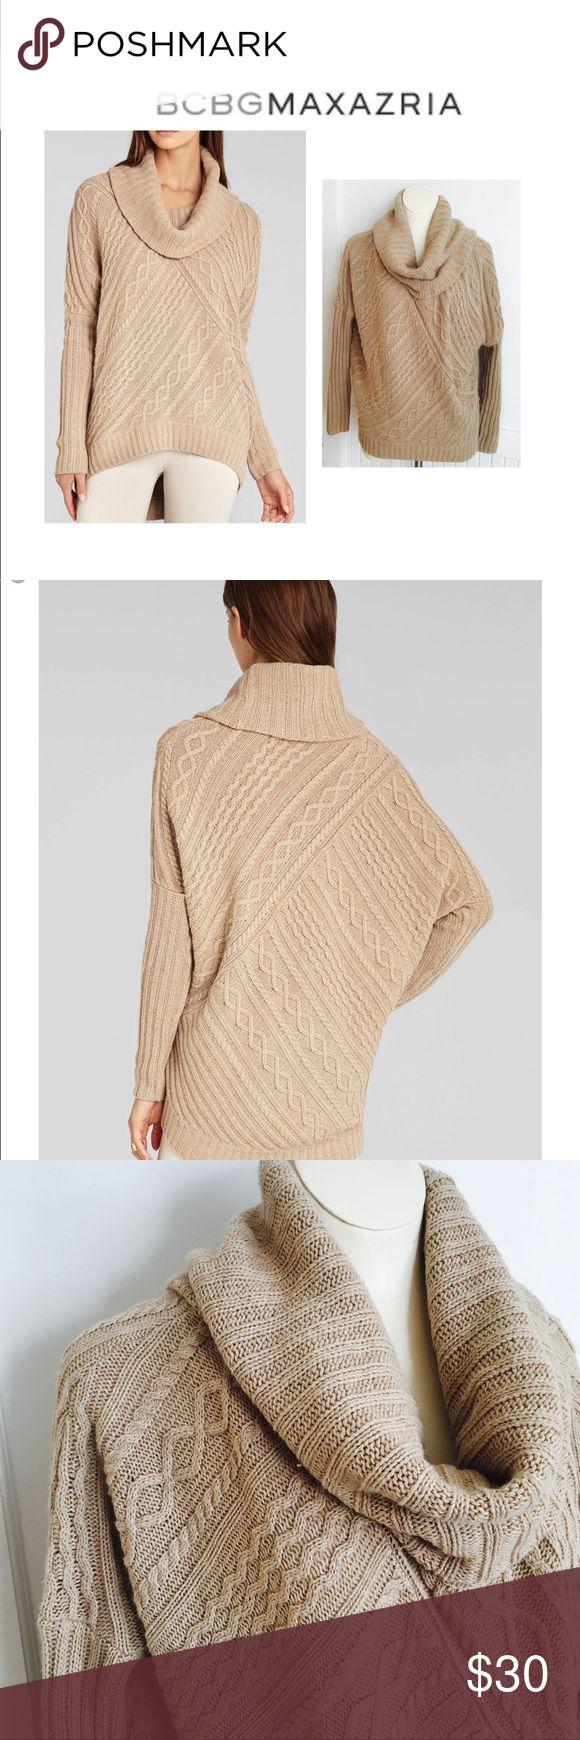 BCBG Linden Cowl Neck Oversized Sweater Cowl neck cable knit pullover. Quite oversized without much structure (slouchy) and you should be able to size down. Color is in between stock and my own and very neutral. Extra room up top to accommodate larger busts. Has been in dryer with Dryel but not yet dry cleaned. Great preloved condition (few pulls or pills) nothing noticeable when worn BCBGMaxAzria Sweaters Cowl & Turtlenecks